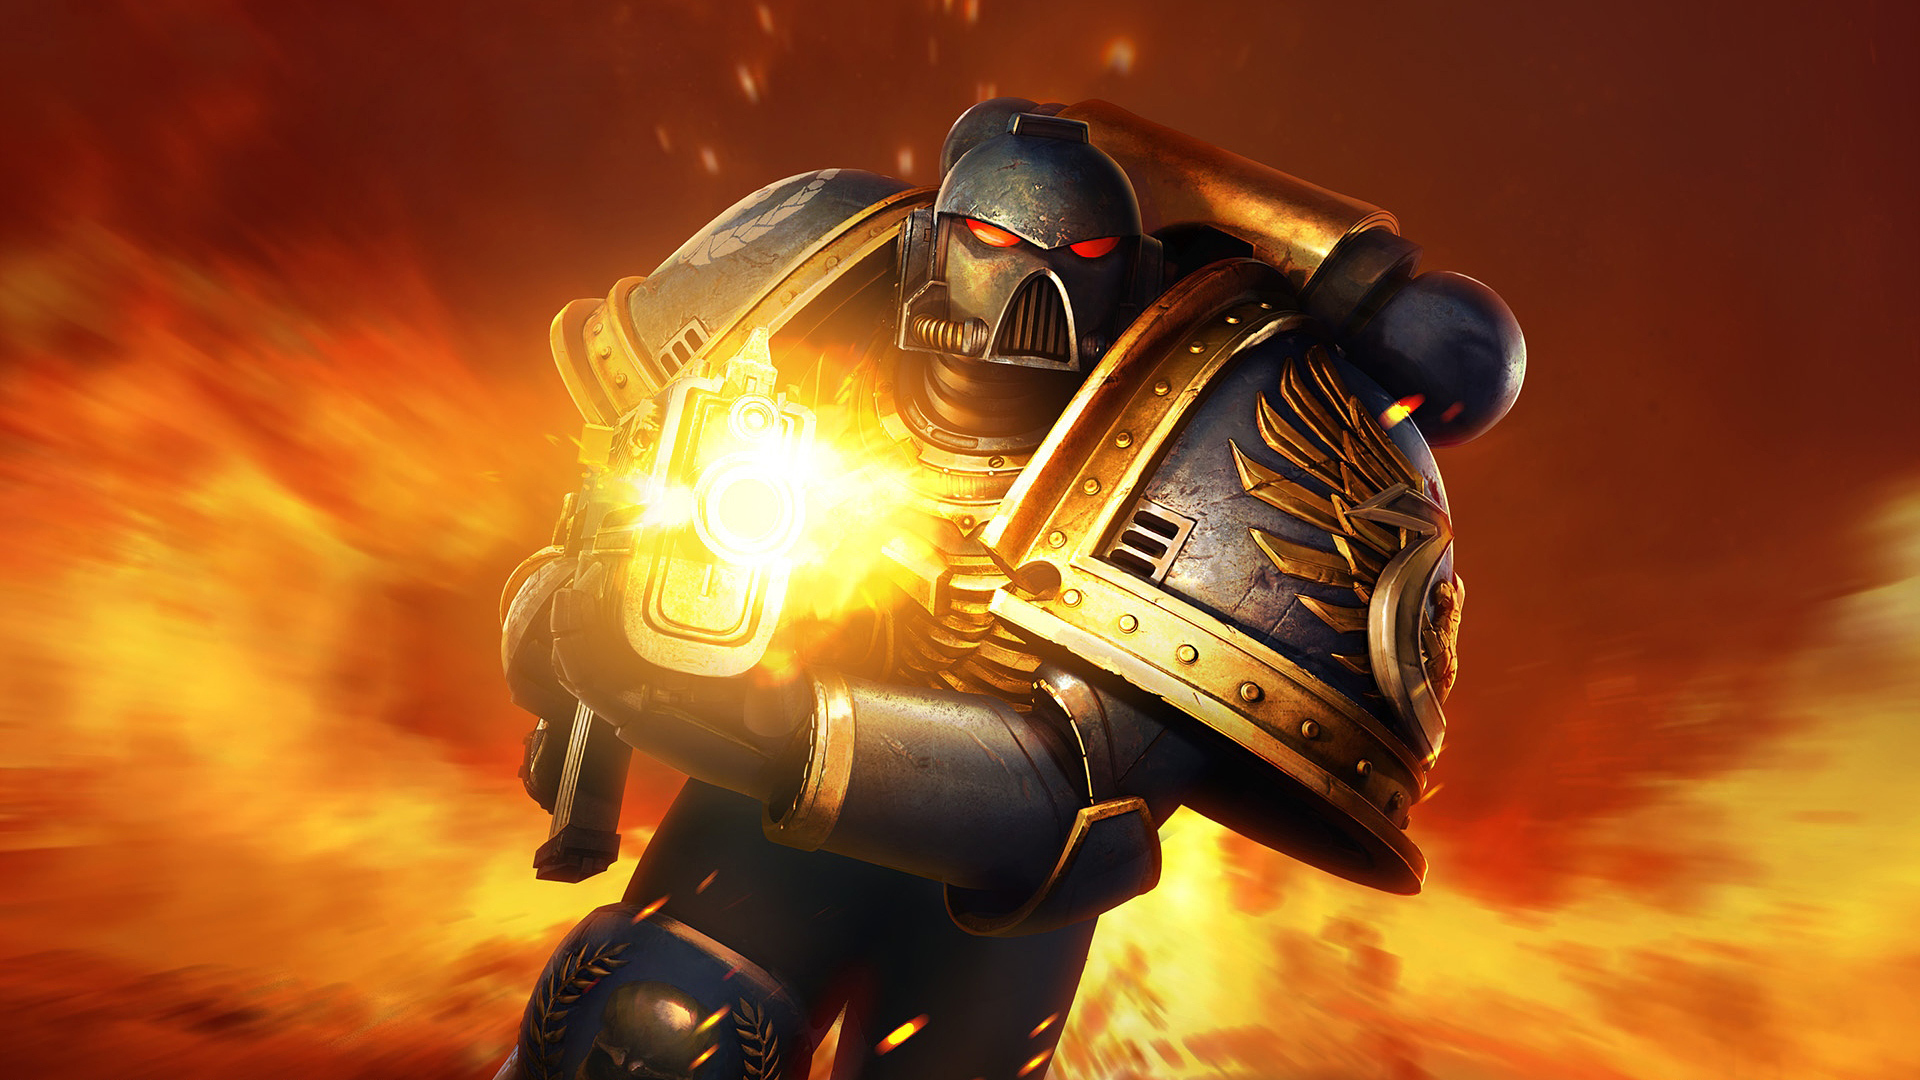 Ultramarines Space Marine ultramarine HD Wallpaper